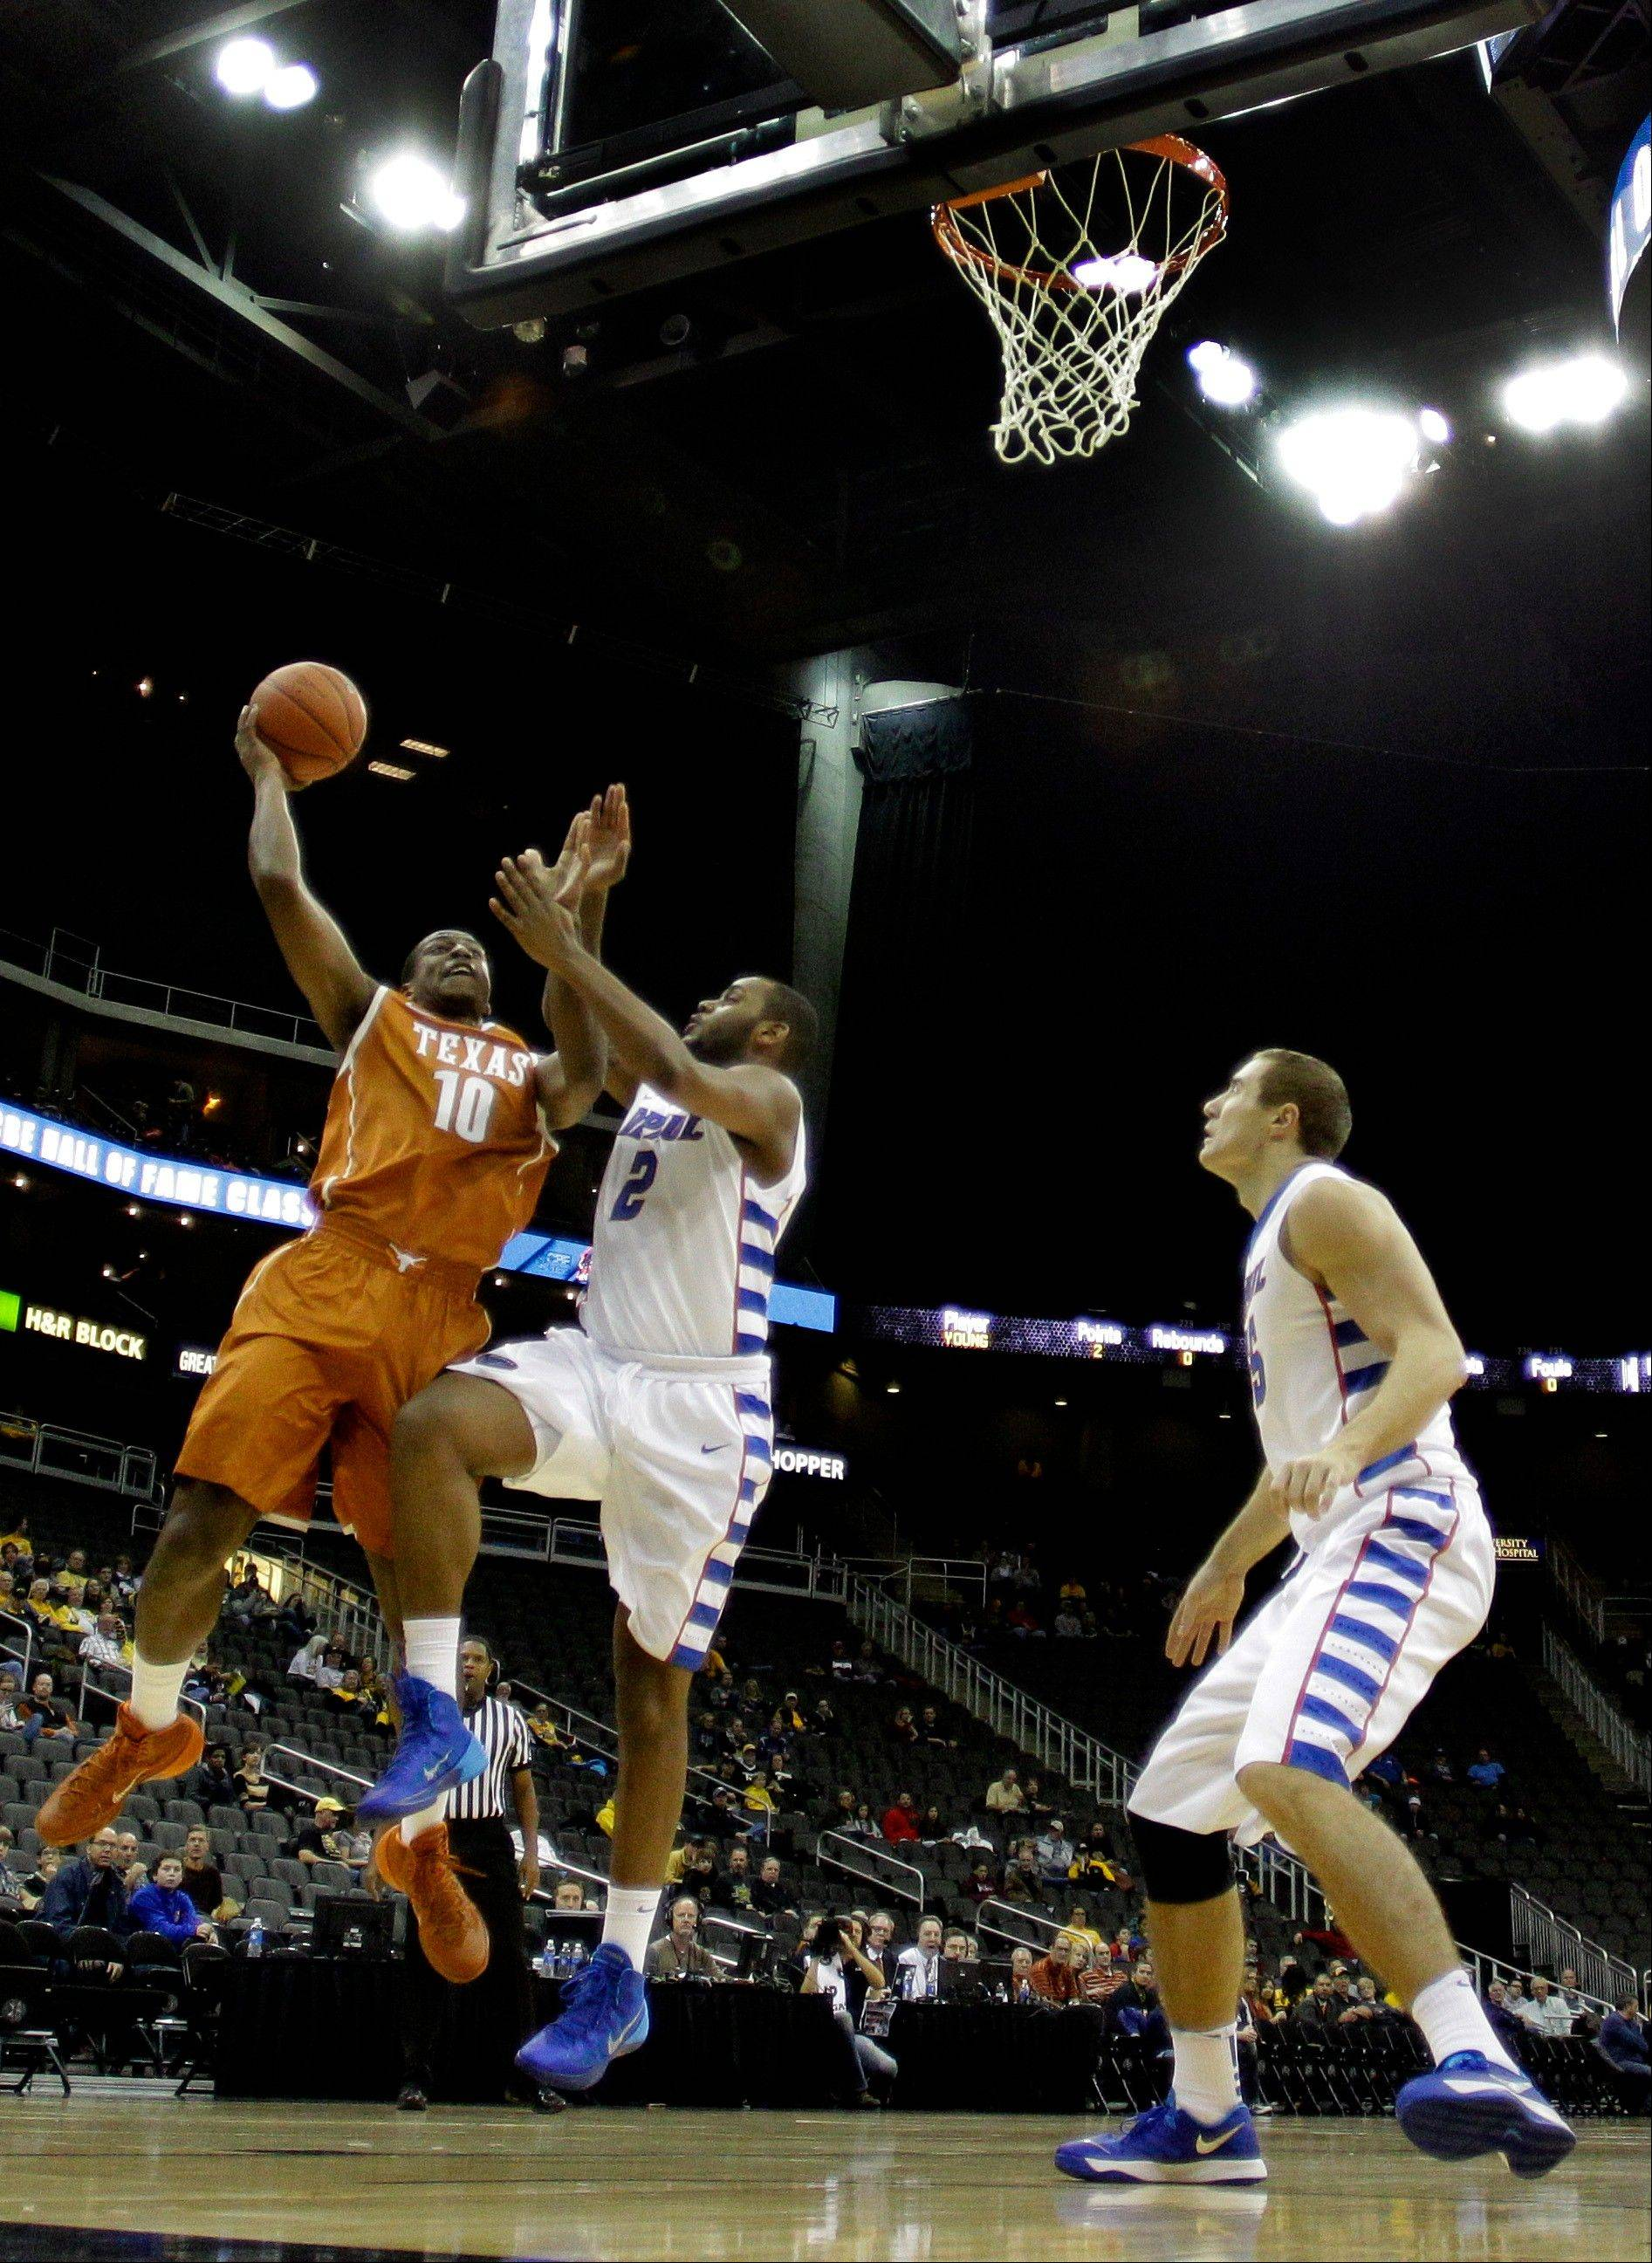 Texas' Jonathan Holmes (10) gets past DePaul's Tommy Hamilton IV (2) to put up a shot during the first half of an NCAA college basketball game Tuesday, Nov. 26, 2013, in Kansas City, Mo. (AP Photo/Charlie Riedel)